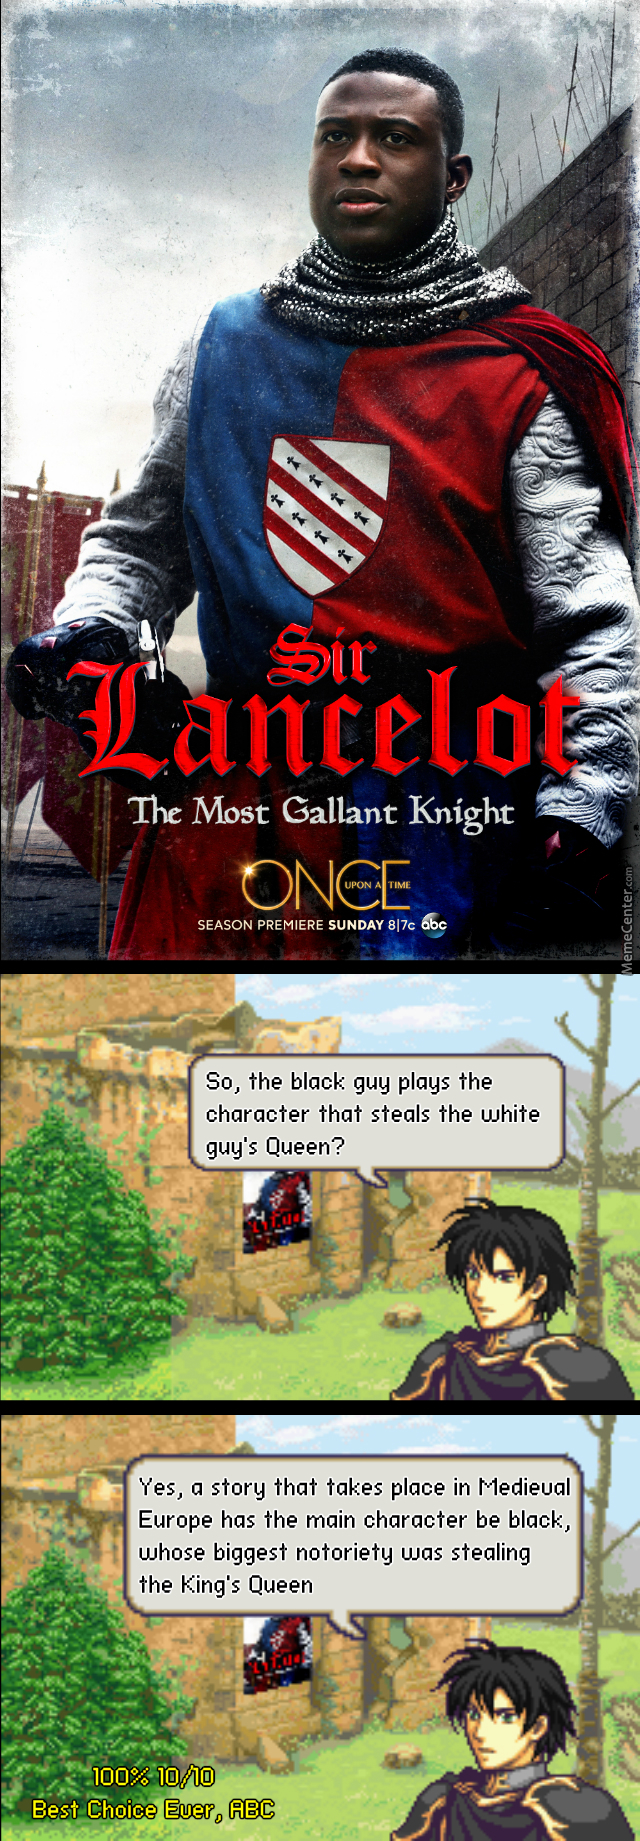 It's Medieval Europe1! Call Me Racist, But Black People